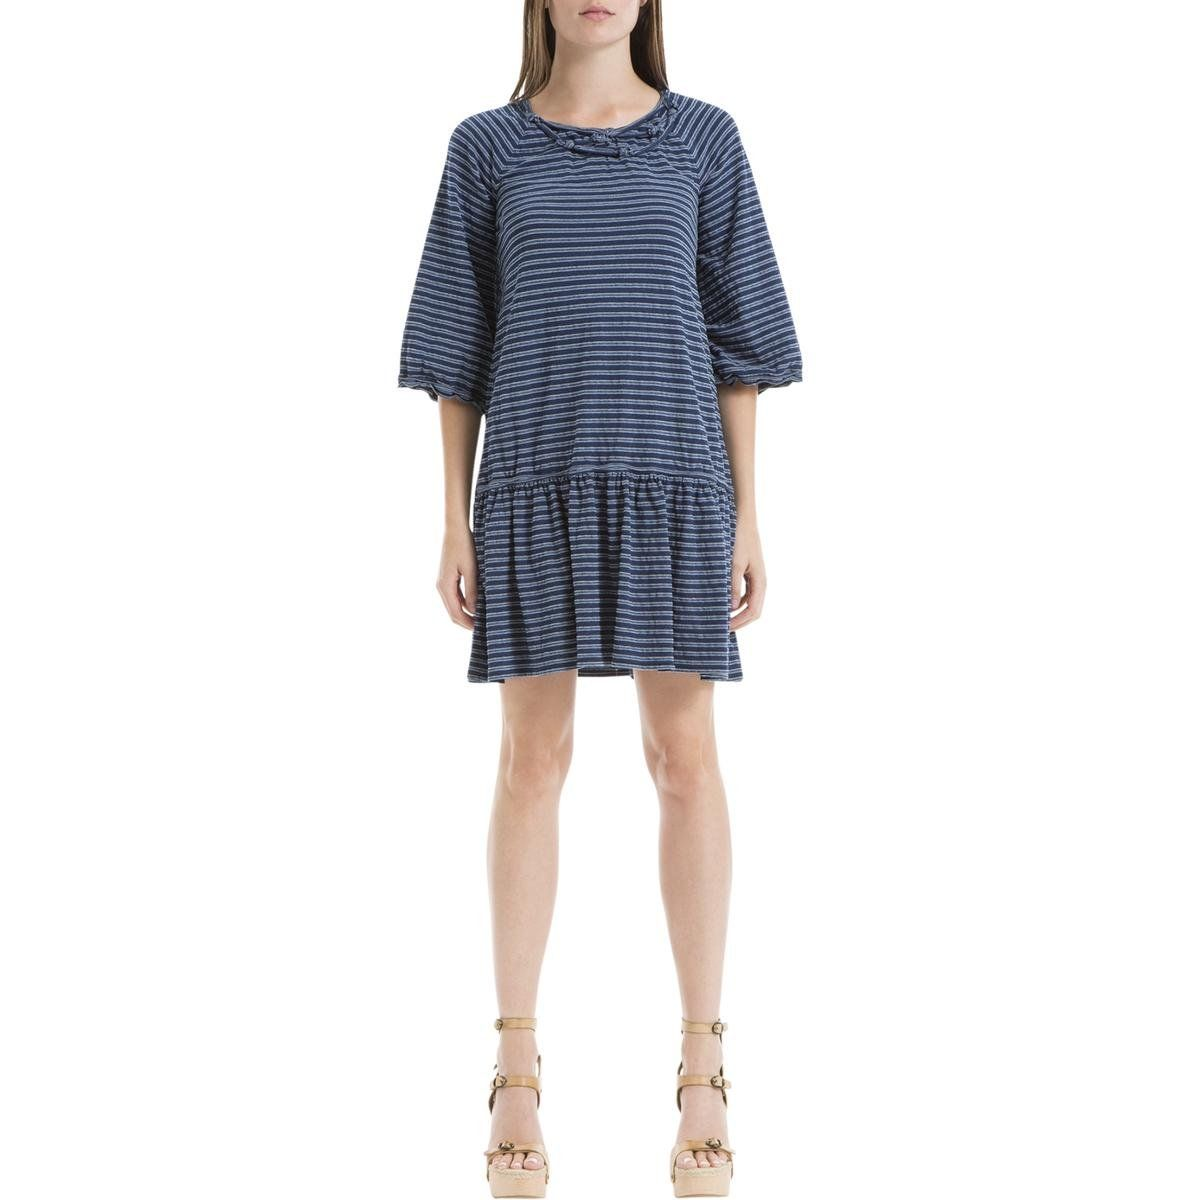 Max Studio Womens Melina Dropped Waist Striped Casual Dress Navy Xl Check Out The Image By Visiting The Link Th Striped Casual Dresses Casual Dress Casual [ 1200 x 1200 Pixel ]